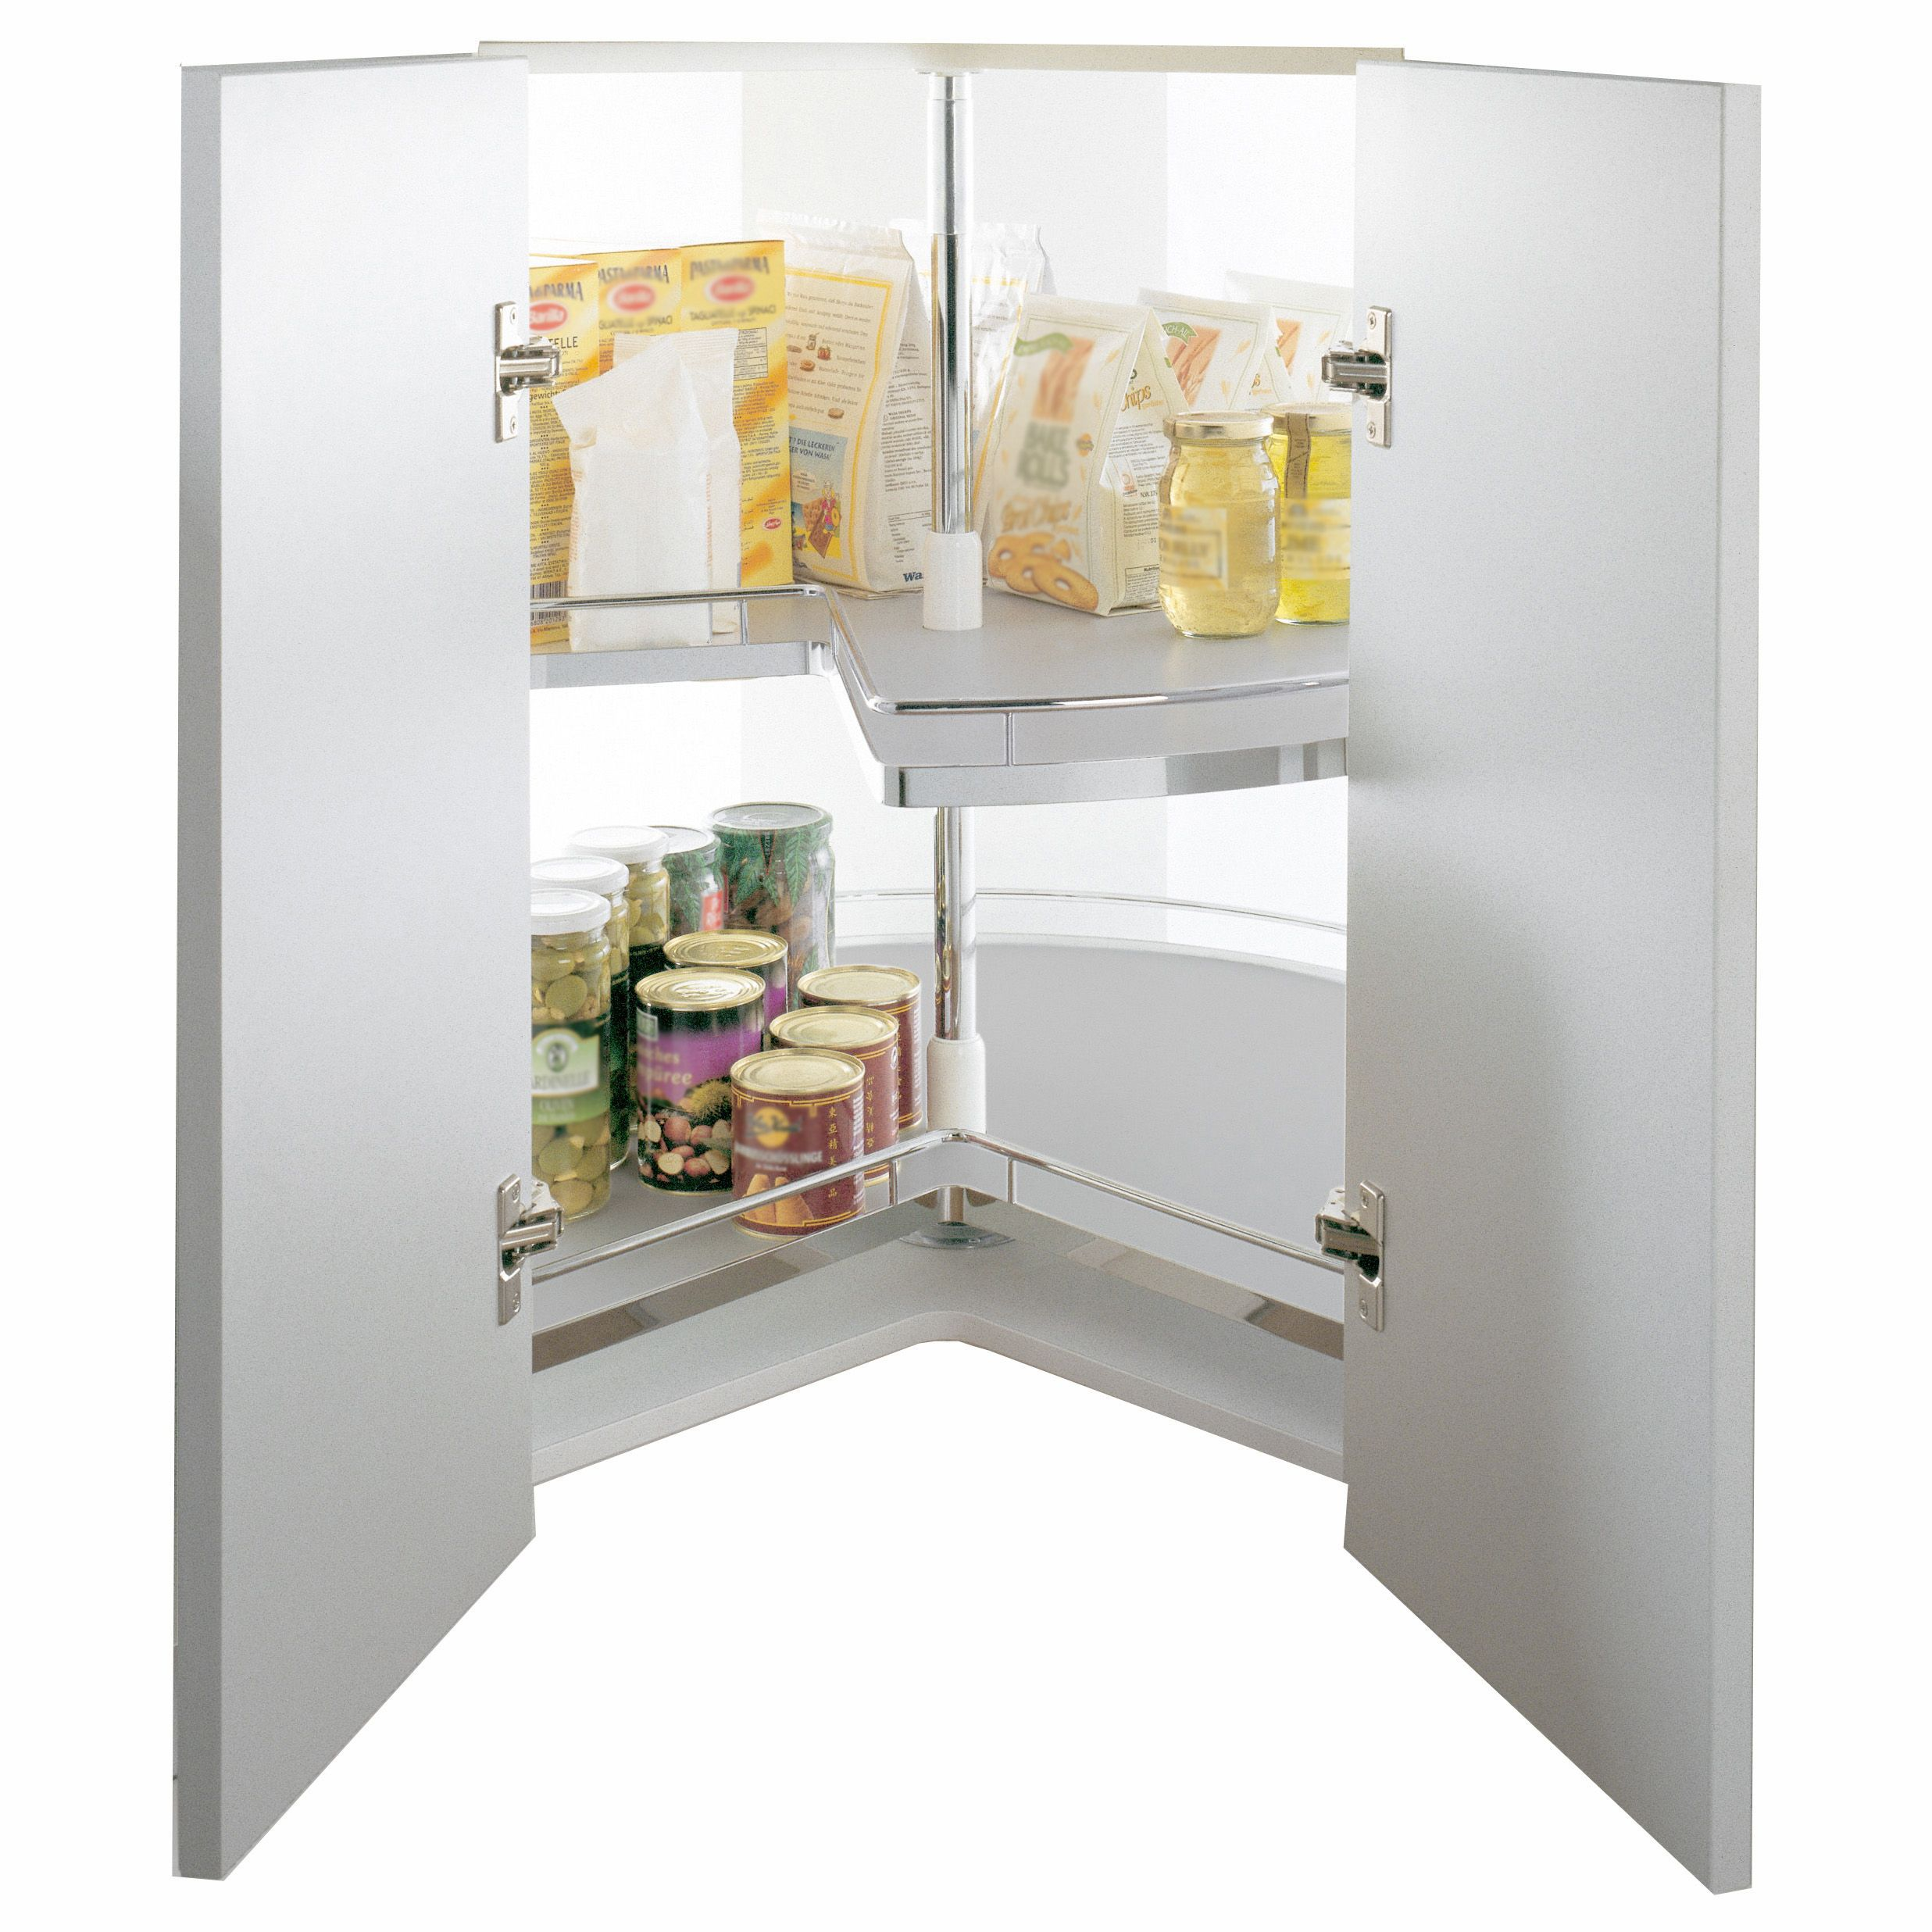 Bathroom Cabinets Uk Bq Kessebaphmer Corner Cabinet Three Quarter Carousel 1000mm